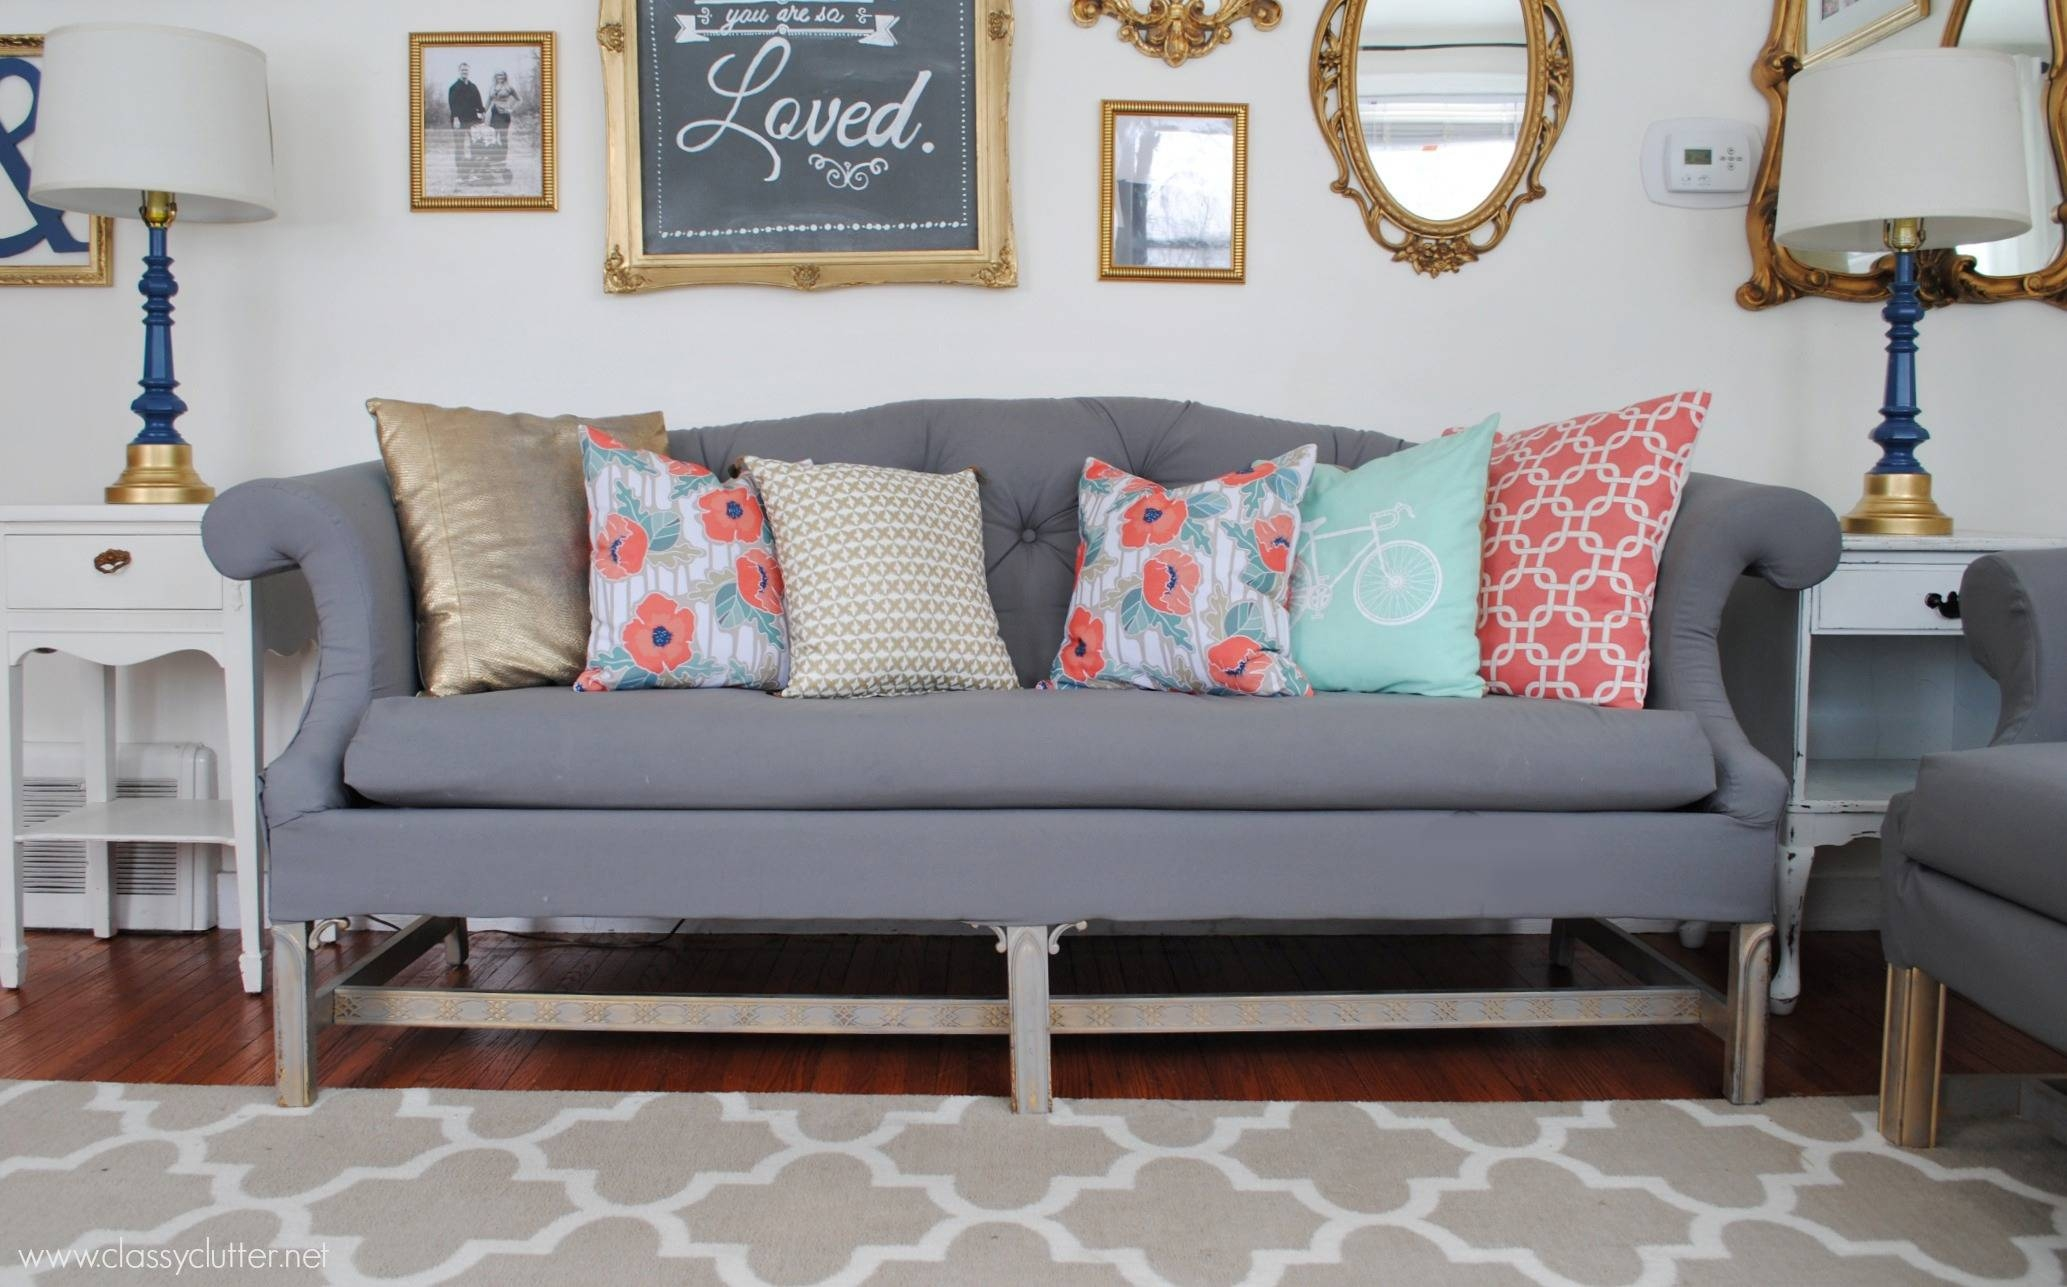 How To Reupholster A Sofa regarding Reupholster Sofas Cushions (Image 9 of 15)